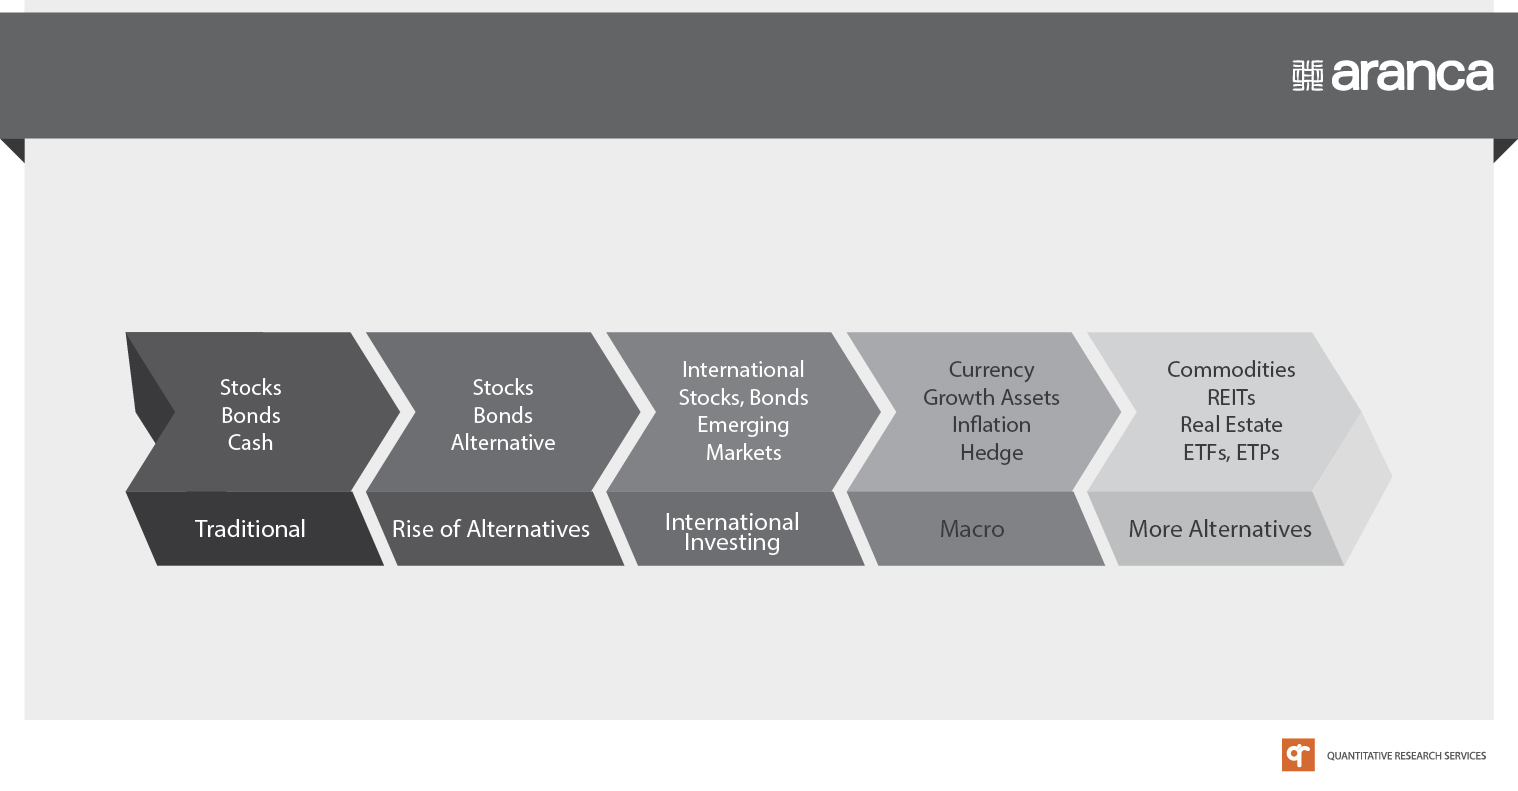 Evolution of Asset Classes for Investments